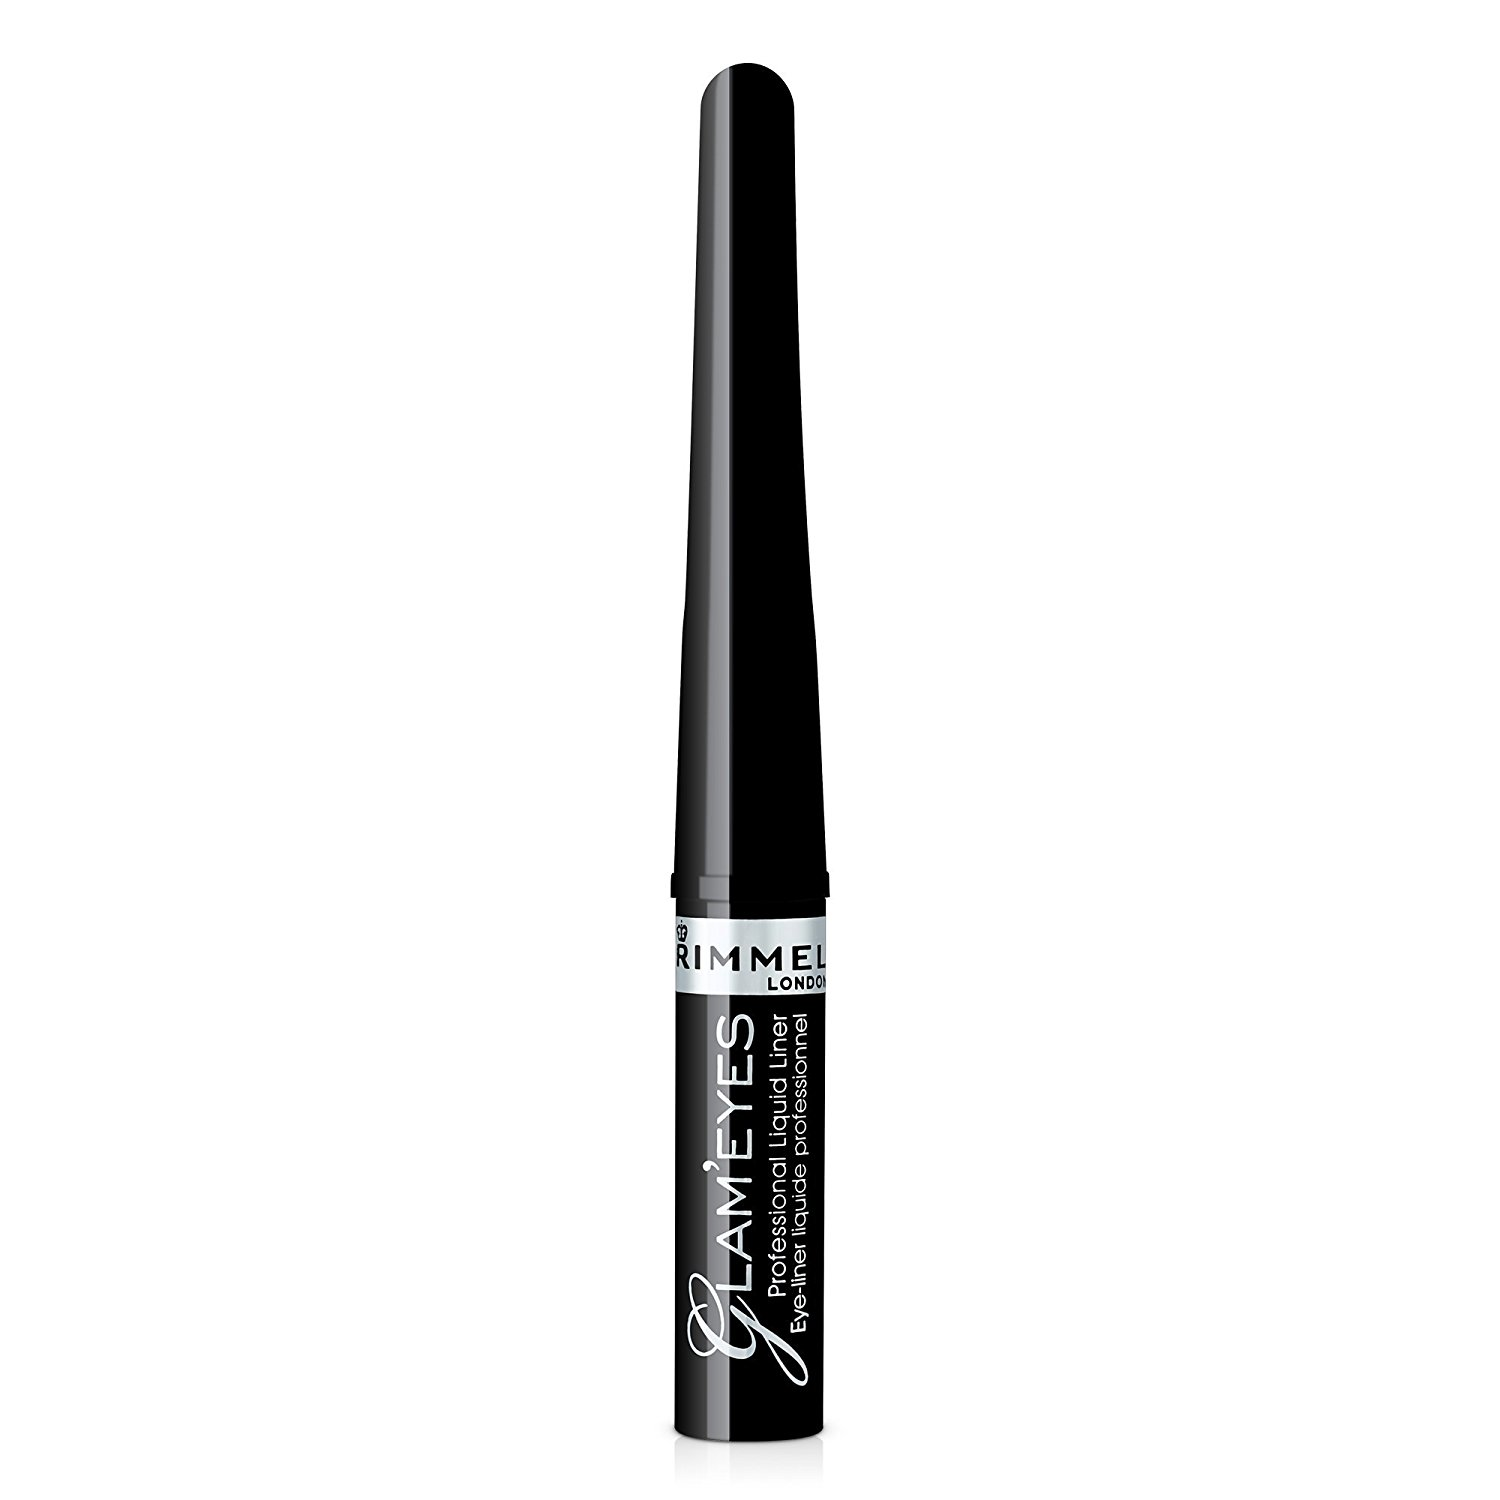 Rimmel London Glam Eyes Eyeliner